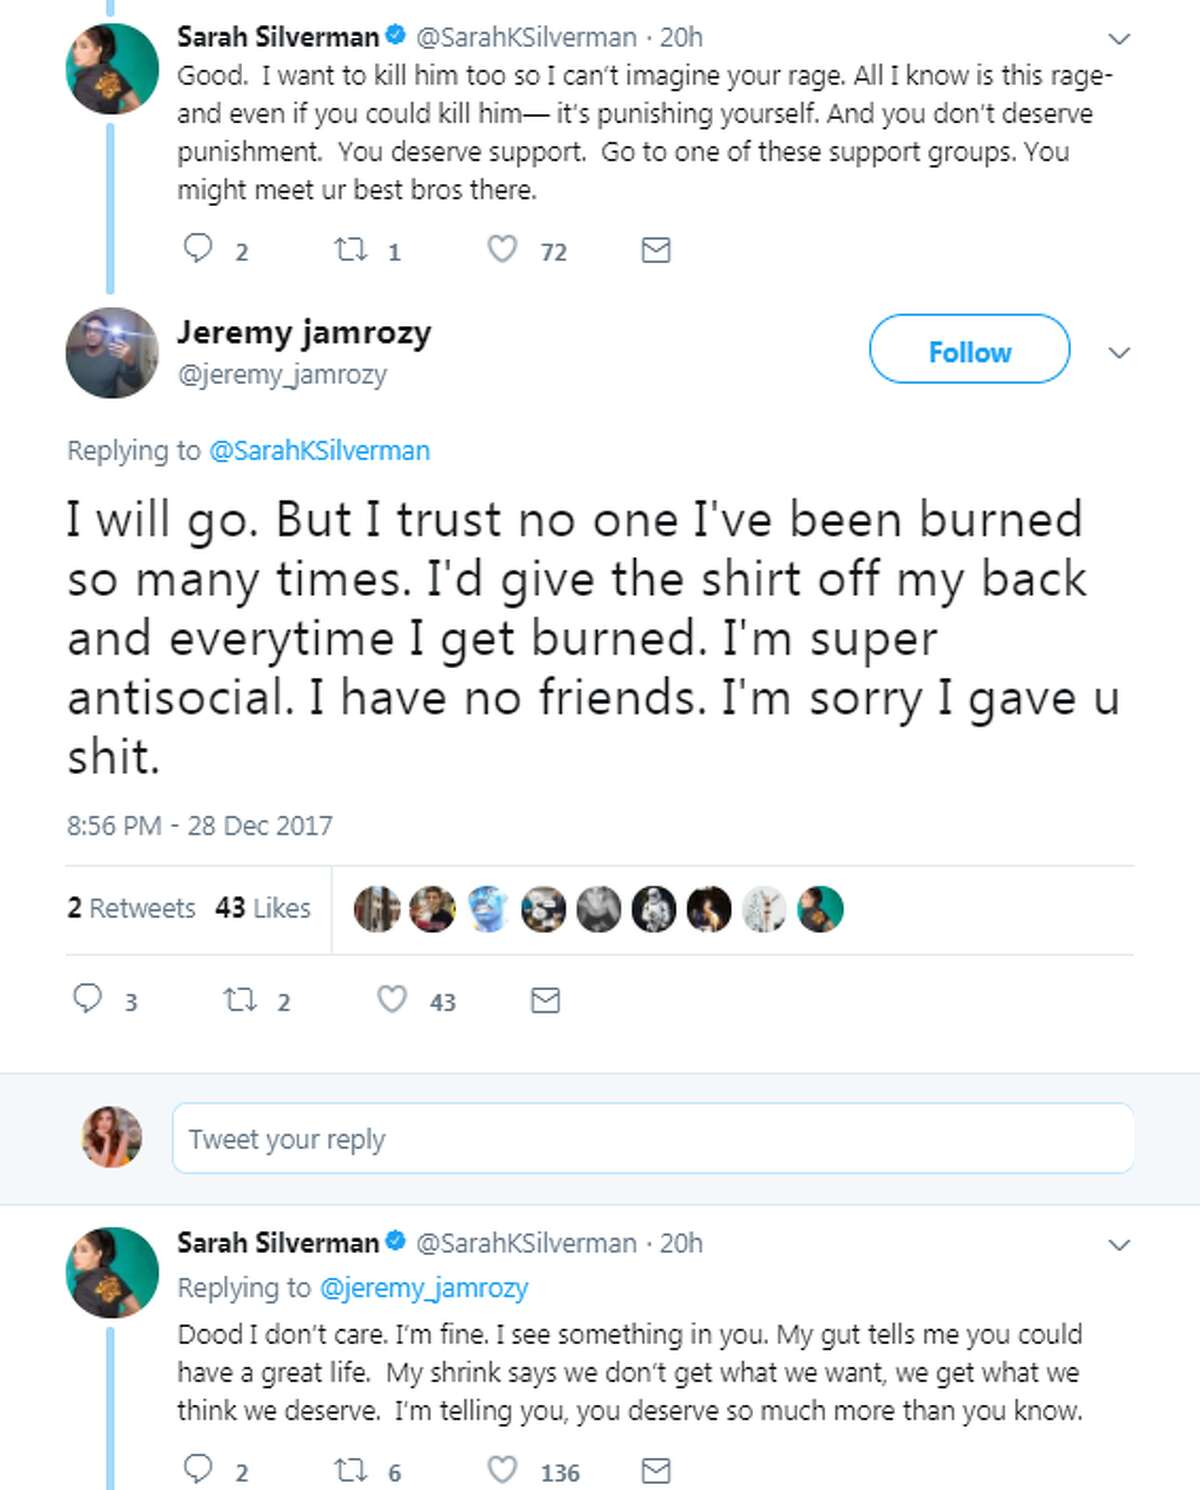 Threads of negative reactions beneath celebrity tweets is nothing out of the ordinary, but an exchange between Sarah Silverman and a San Antonio man had a much more postive ending.